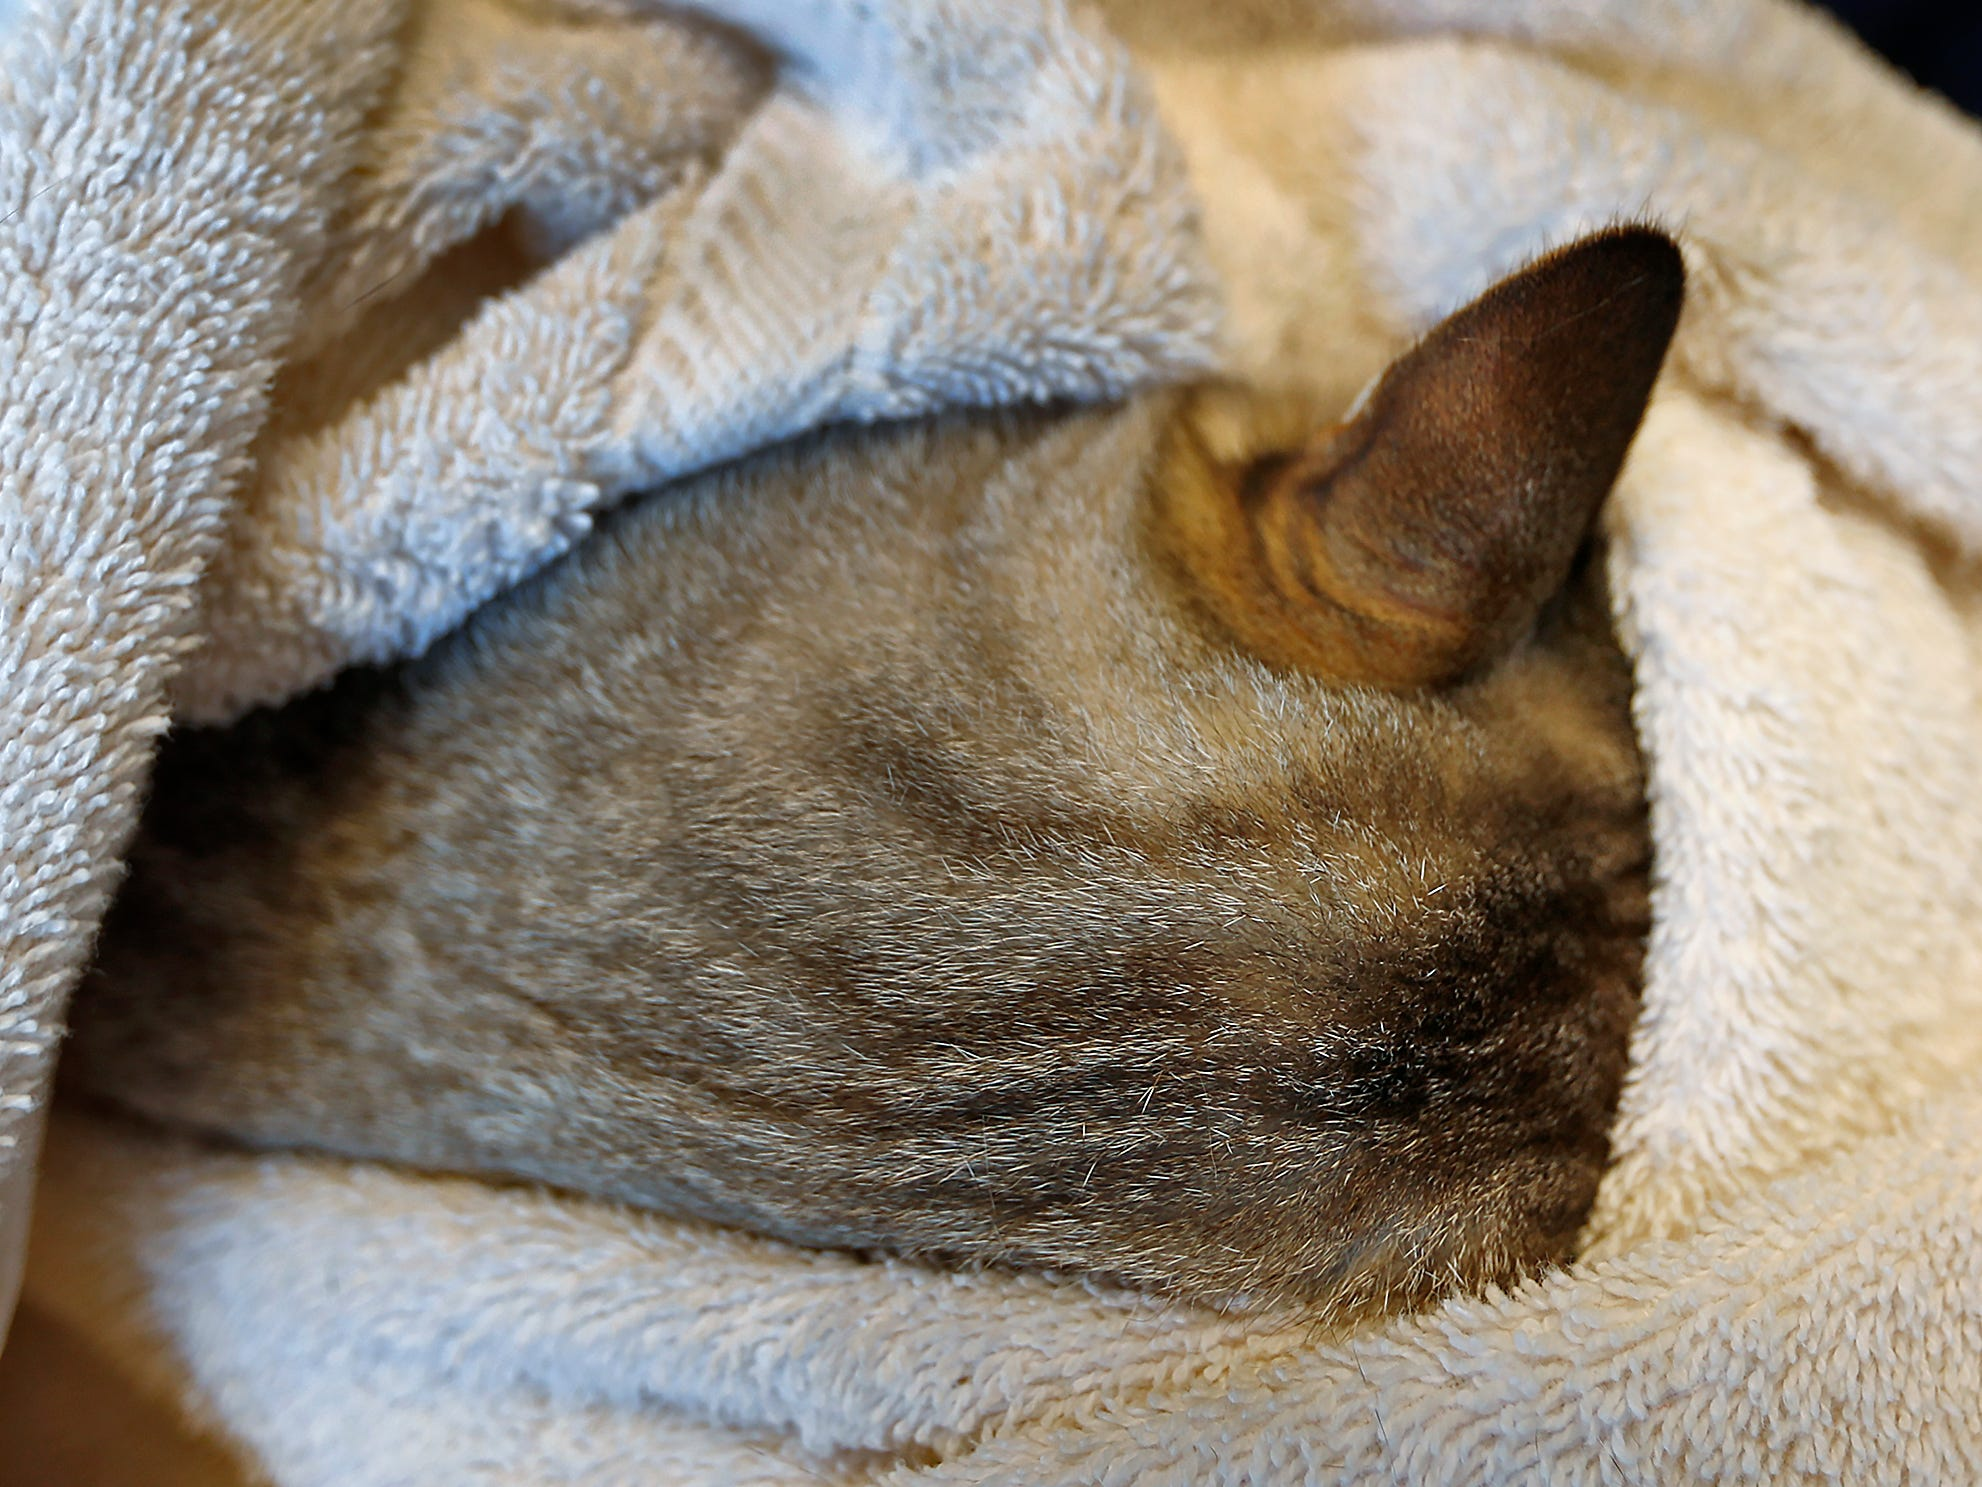 """Paw Patch Place RVT Charlotte Threlkeld's cat, Sage, hides inside a towel, at Paw Patch Place Animal Hospital, Friday, Aug. 31, 2018.  The veterinary clinic is the only one in Indiana to earn special fear free certification from an international program that aims to help vets reduce anxiety for pets prone to feel stressed in their offices.  Sage is wrapped in a """"kitty cat burrito wrap"""" which gives cats comfort and a safe feeling.  Cats can also hide in the towel, if they wants.  And the vet can perform the exam while a cat is in the towel."""